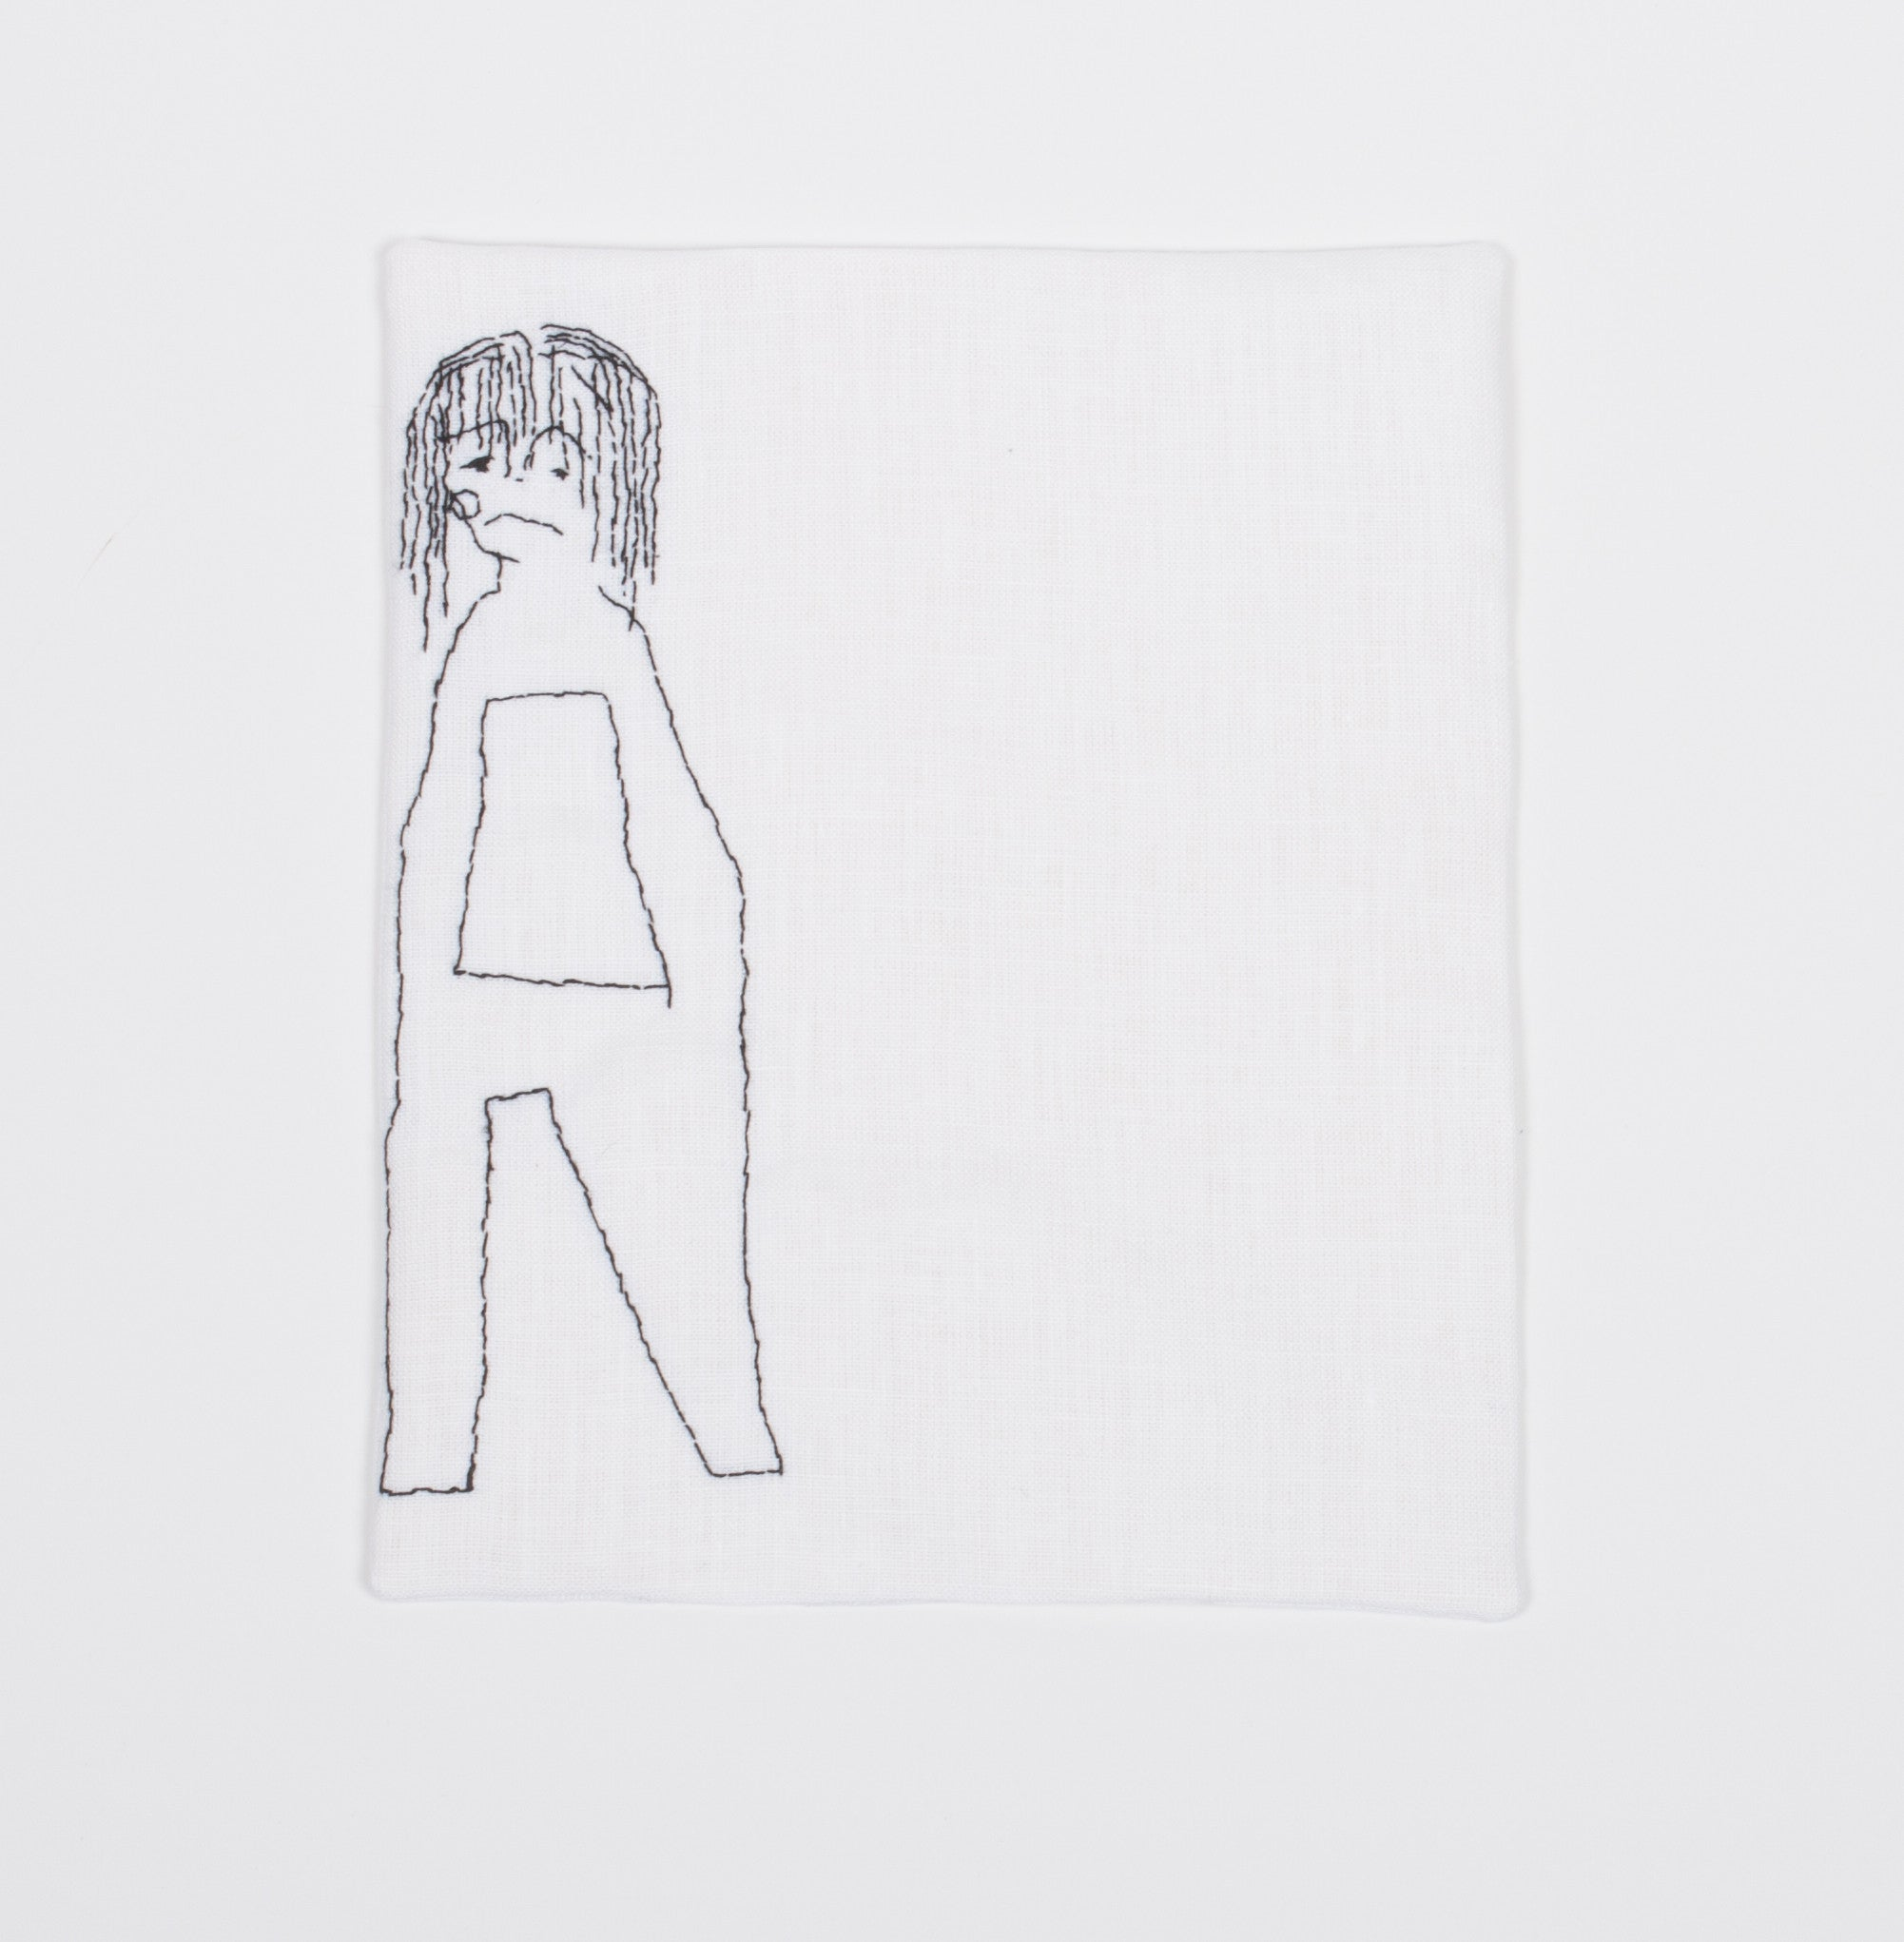 hand embroidered characters and flash - sold individually